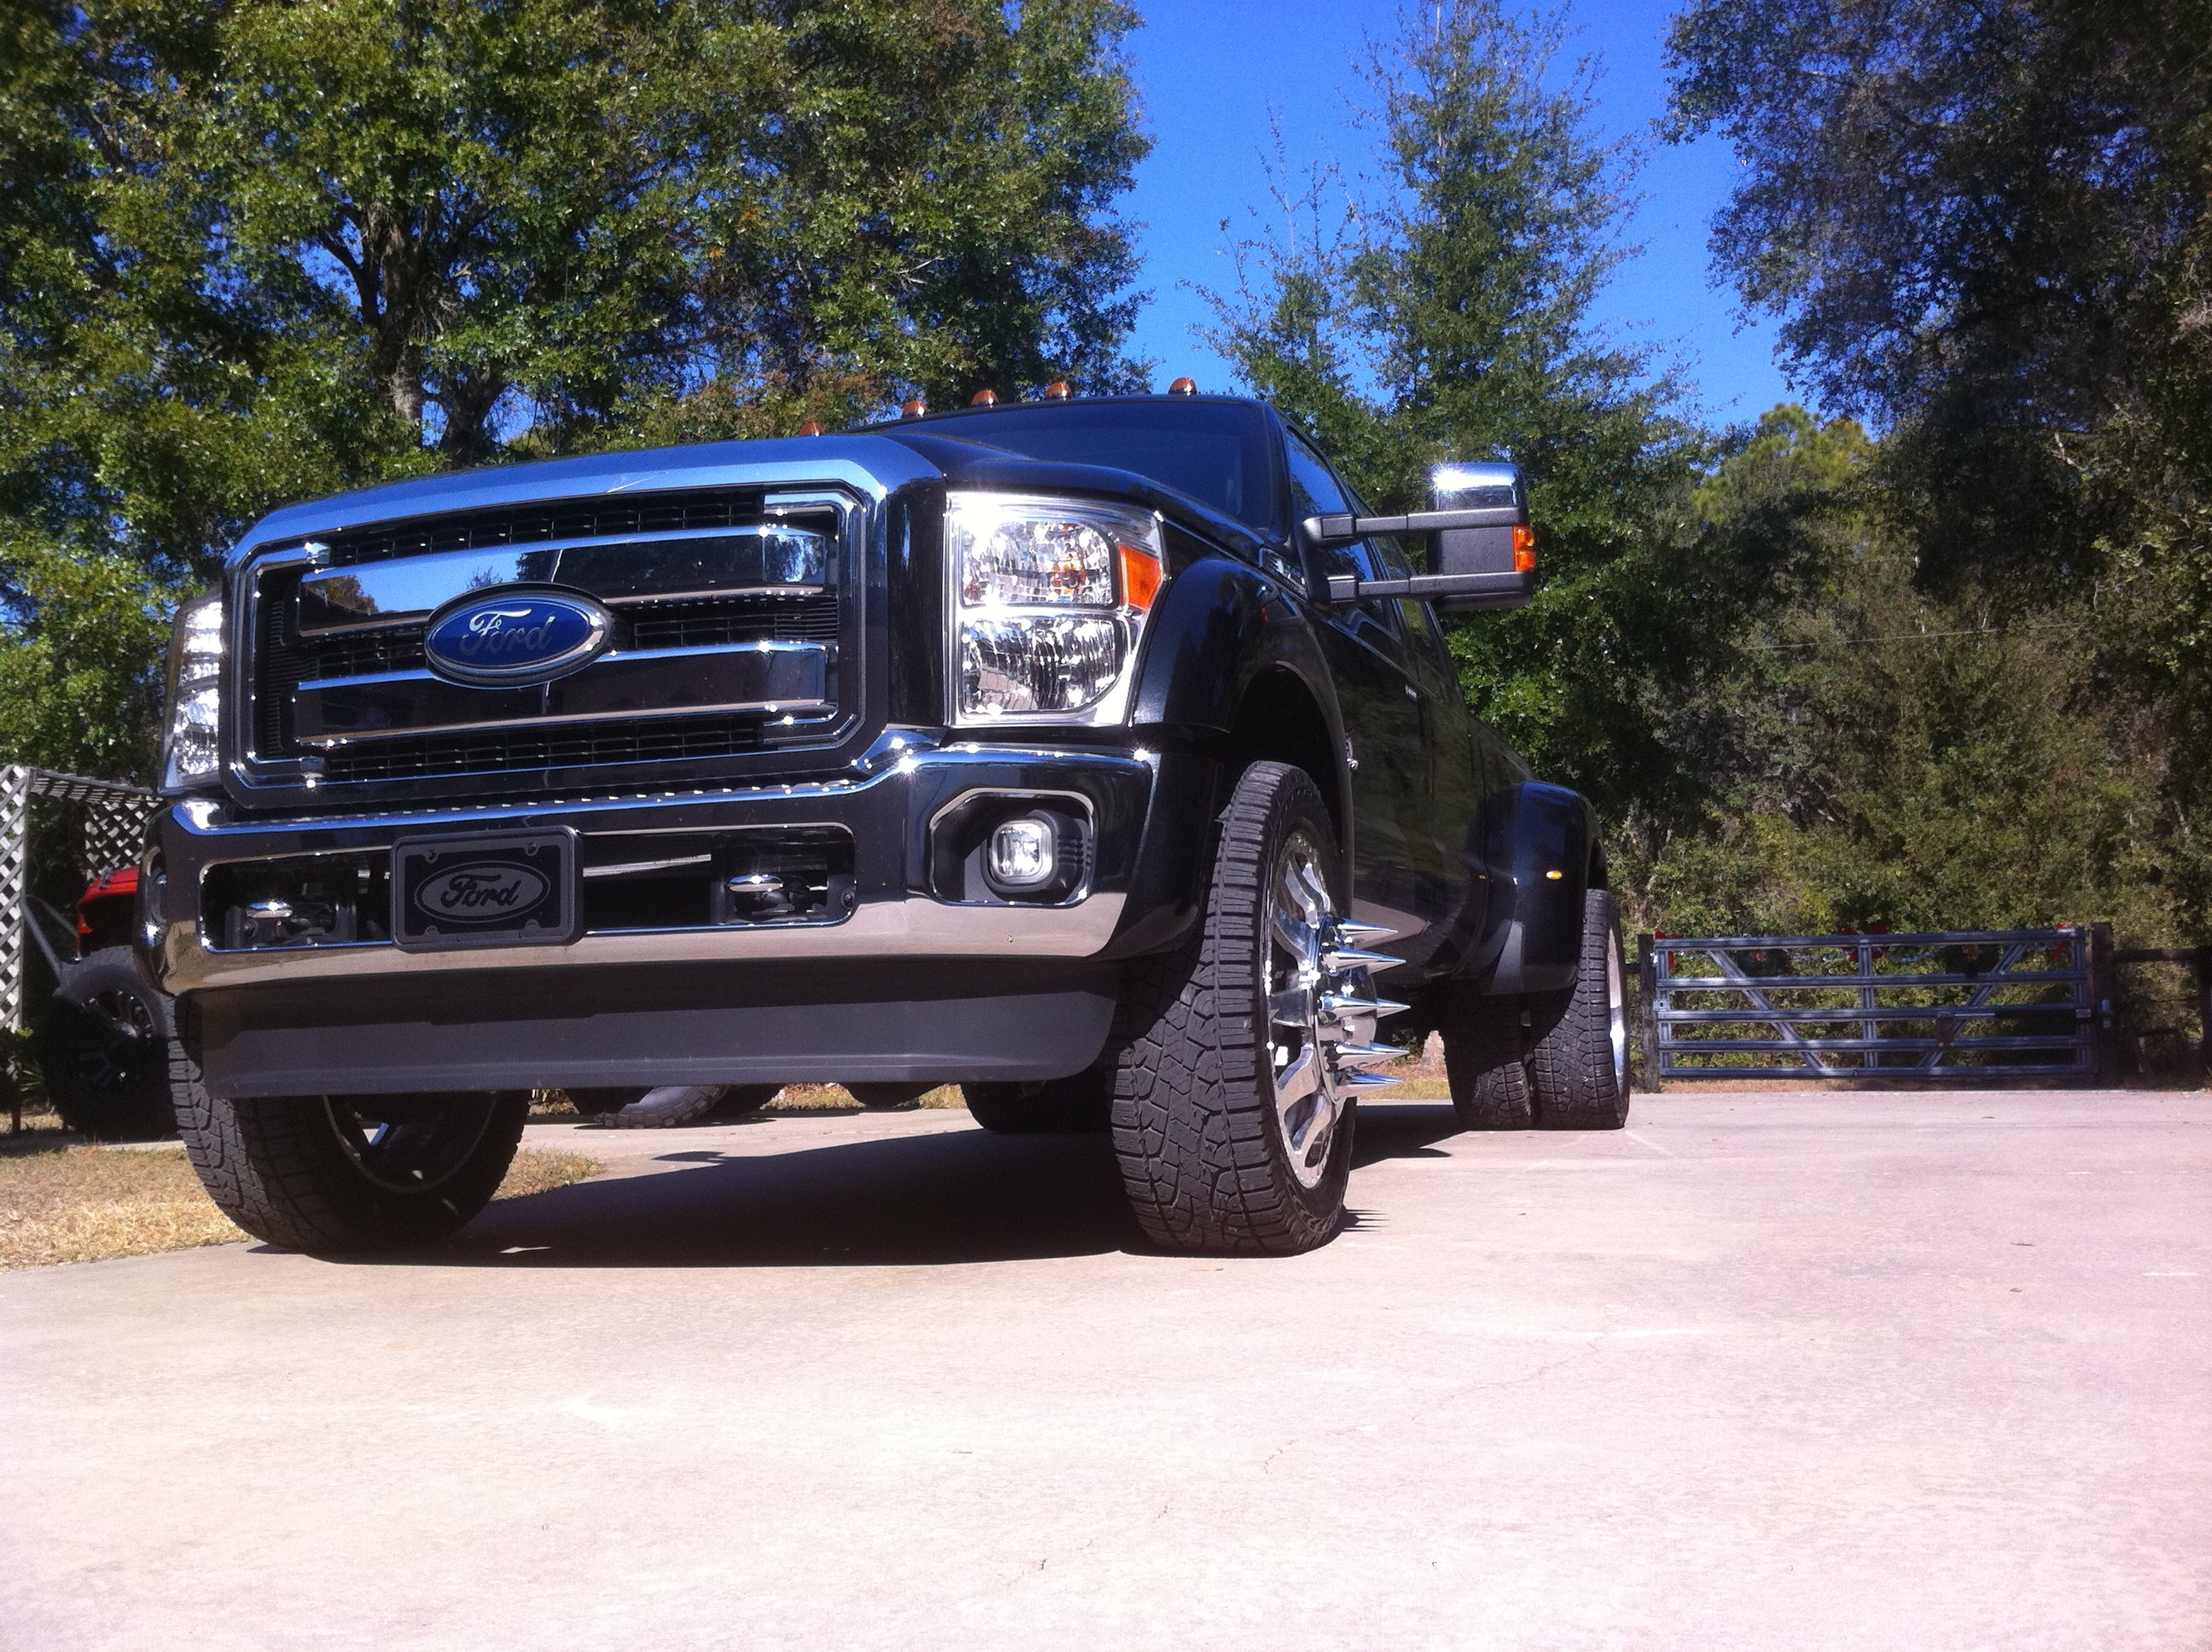 Another BlackfynCustoms1 2011 Ford F450 Super Duty Crew Cab post... - 14891761